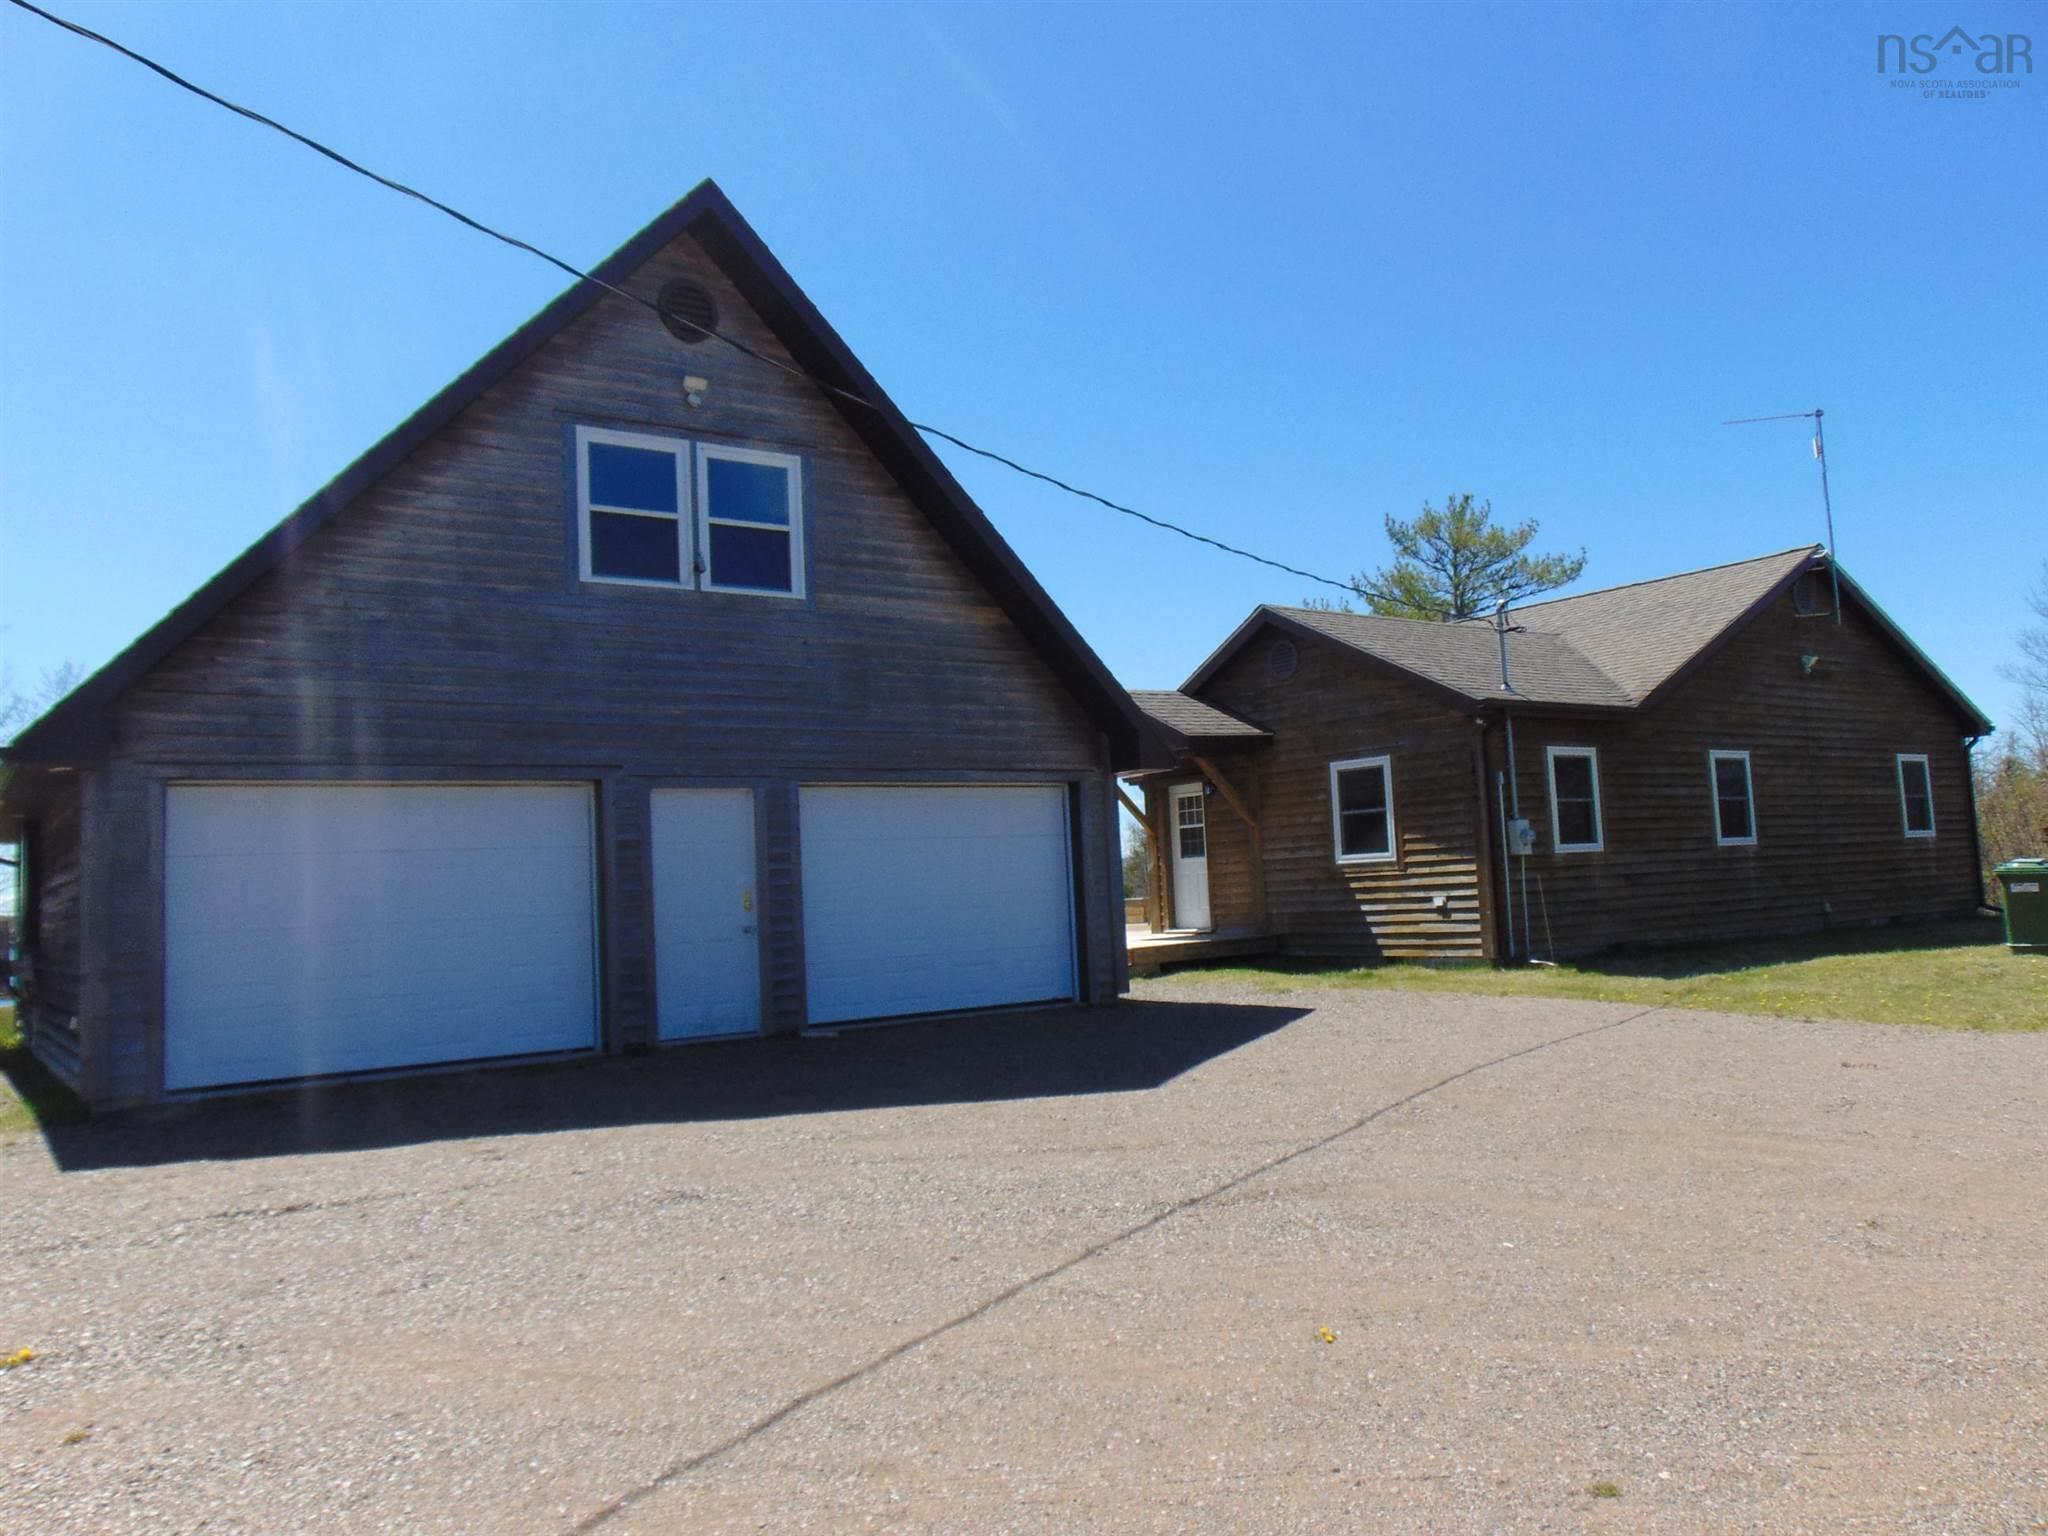 1456 North River Road, Aylesford, Kings, NS, United States B0P 1C0, 3 Bedrooms Bedrooms, ,1 BathroomBathrooms,For Sale,1456 North River Road,202105190